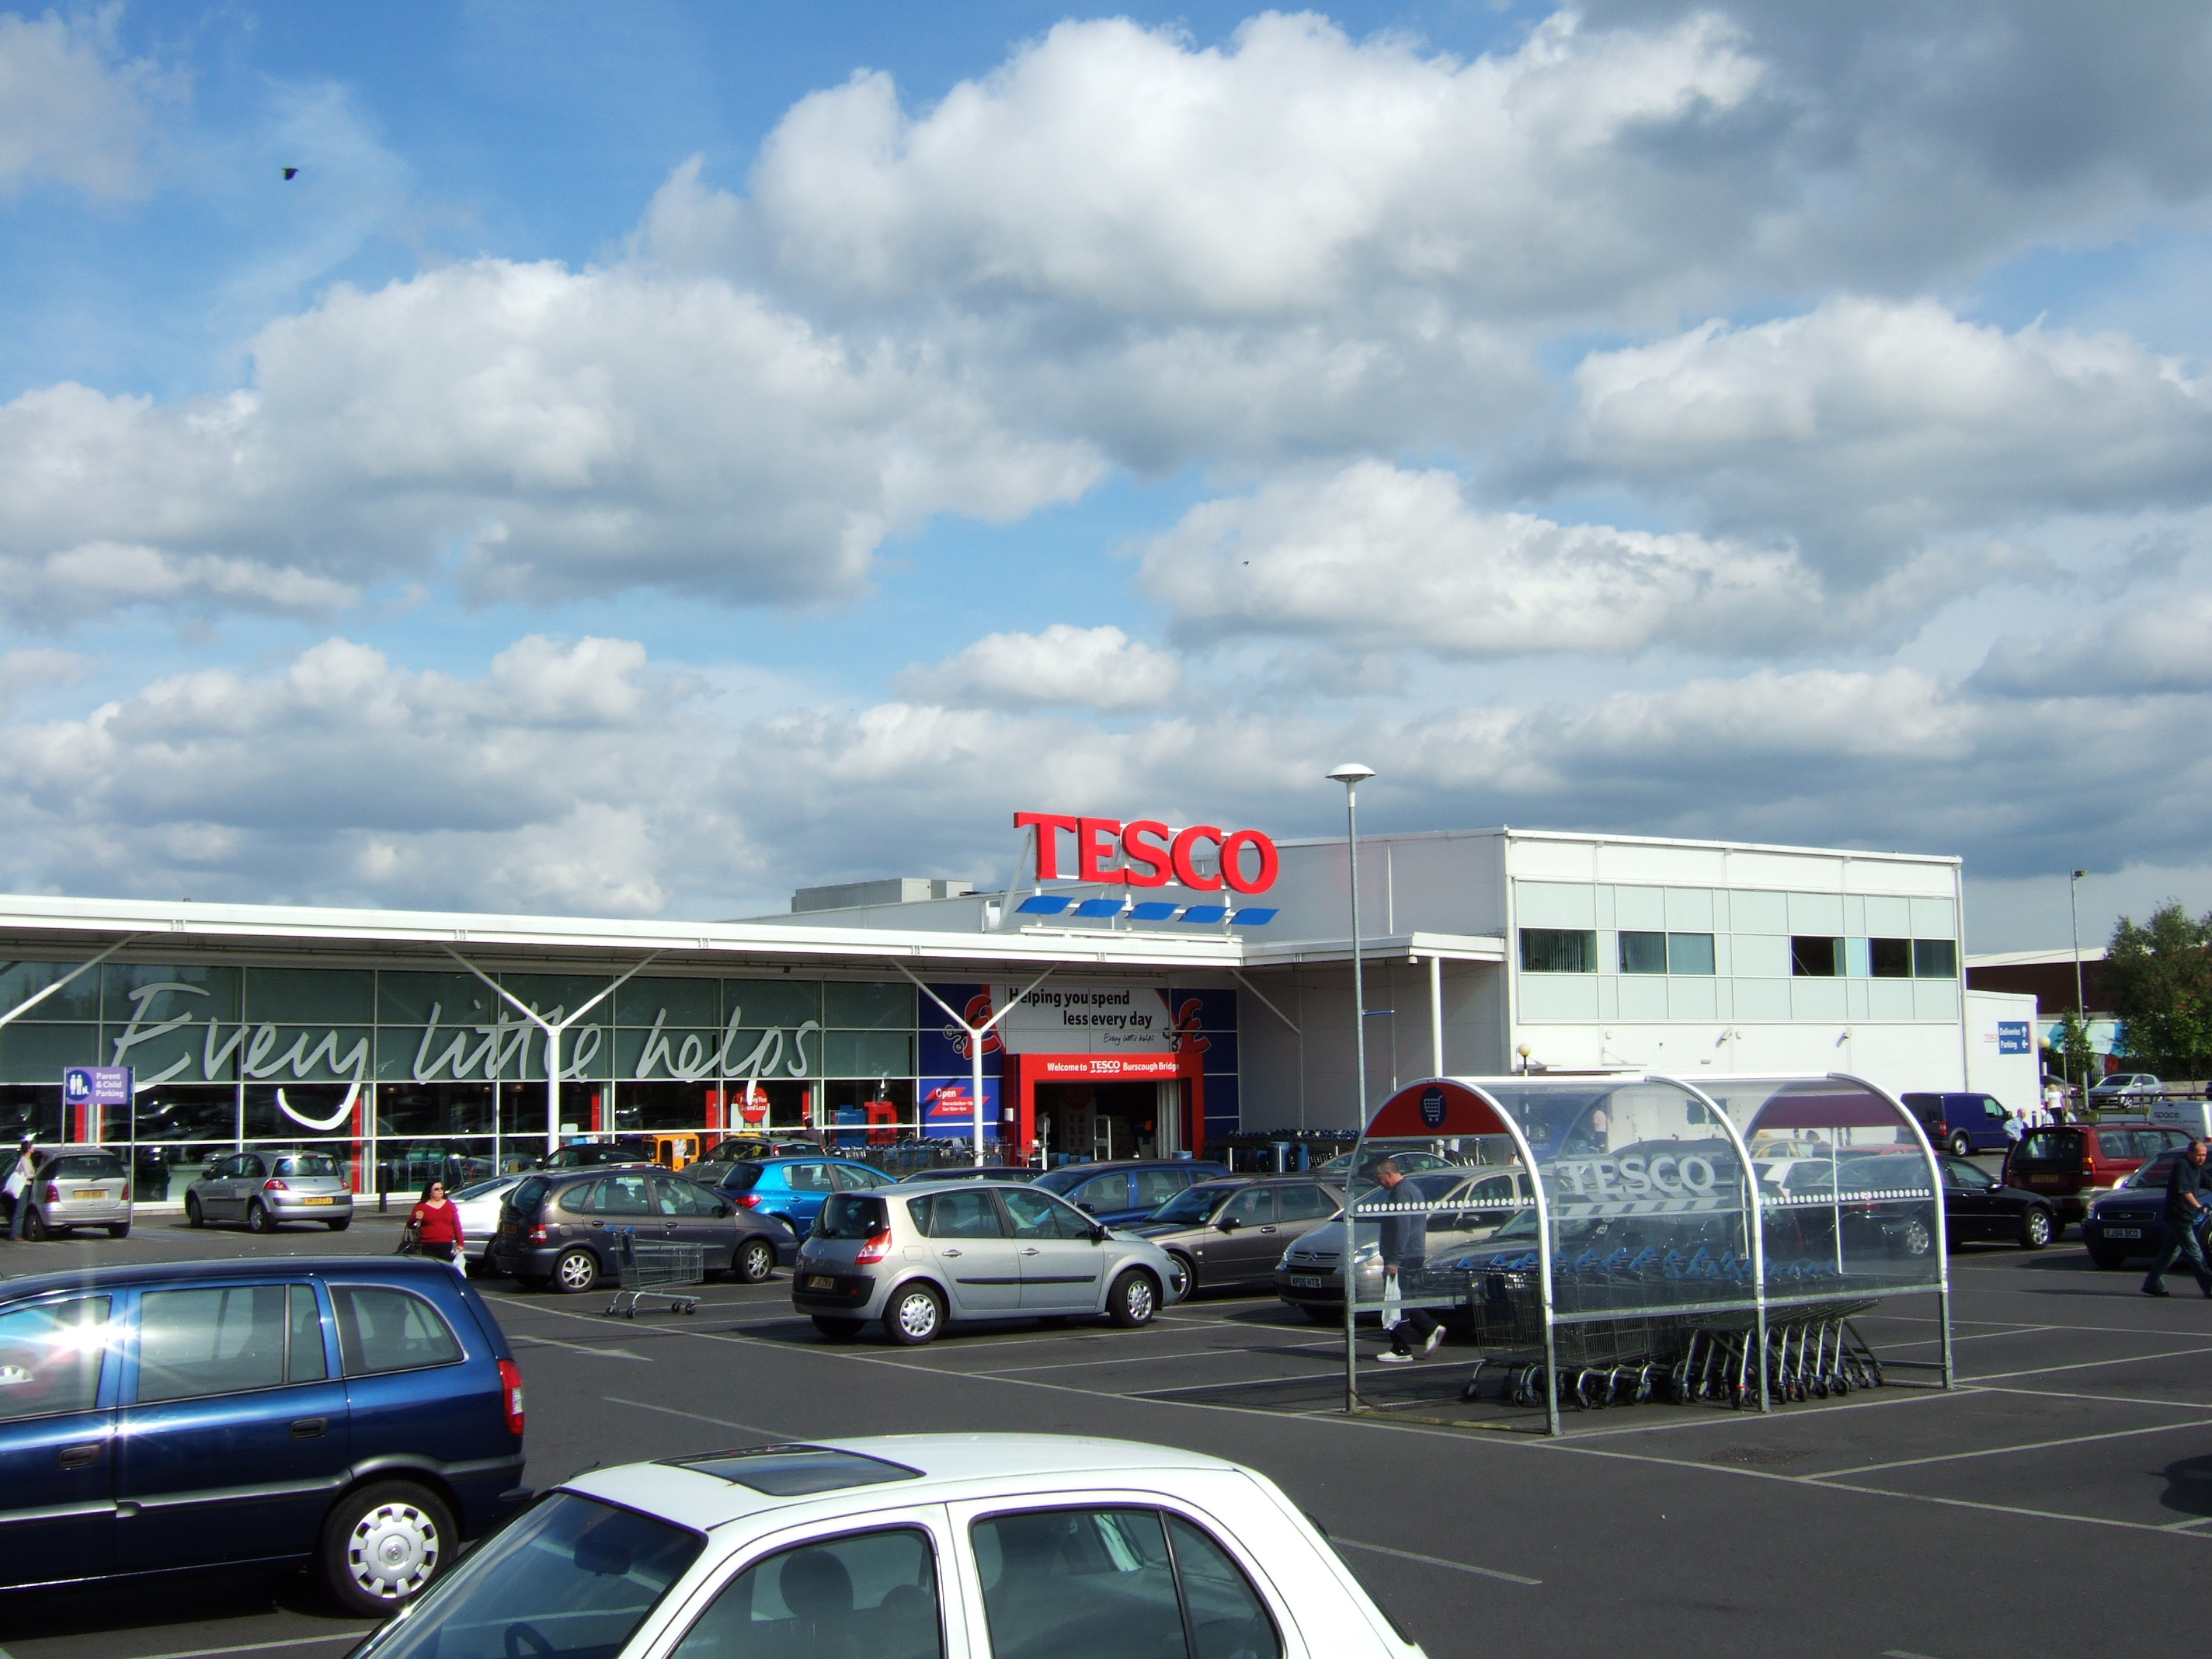 a history of tesco The uk's largest supermarket group, tesco, reported a return to profit for the 12 months to 27 february 2016, following its annus horribilis one year before having posted the worst losses in its history this time last year, tesco – under the stewardship of new ceo, dave lewis – has embarked on a period of.